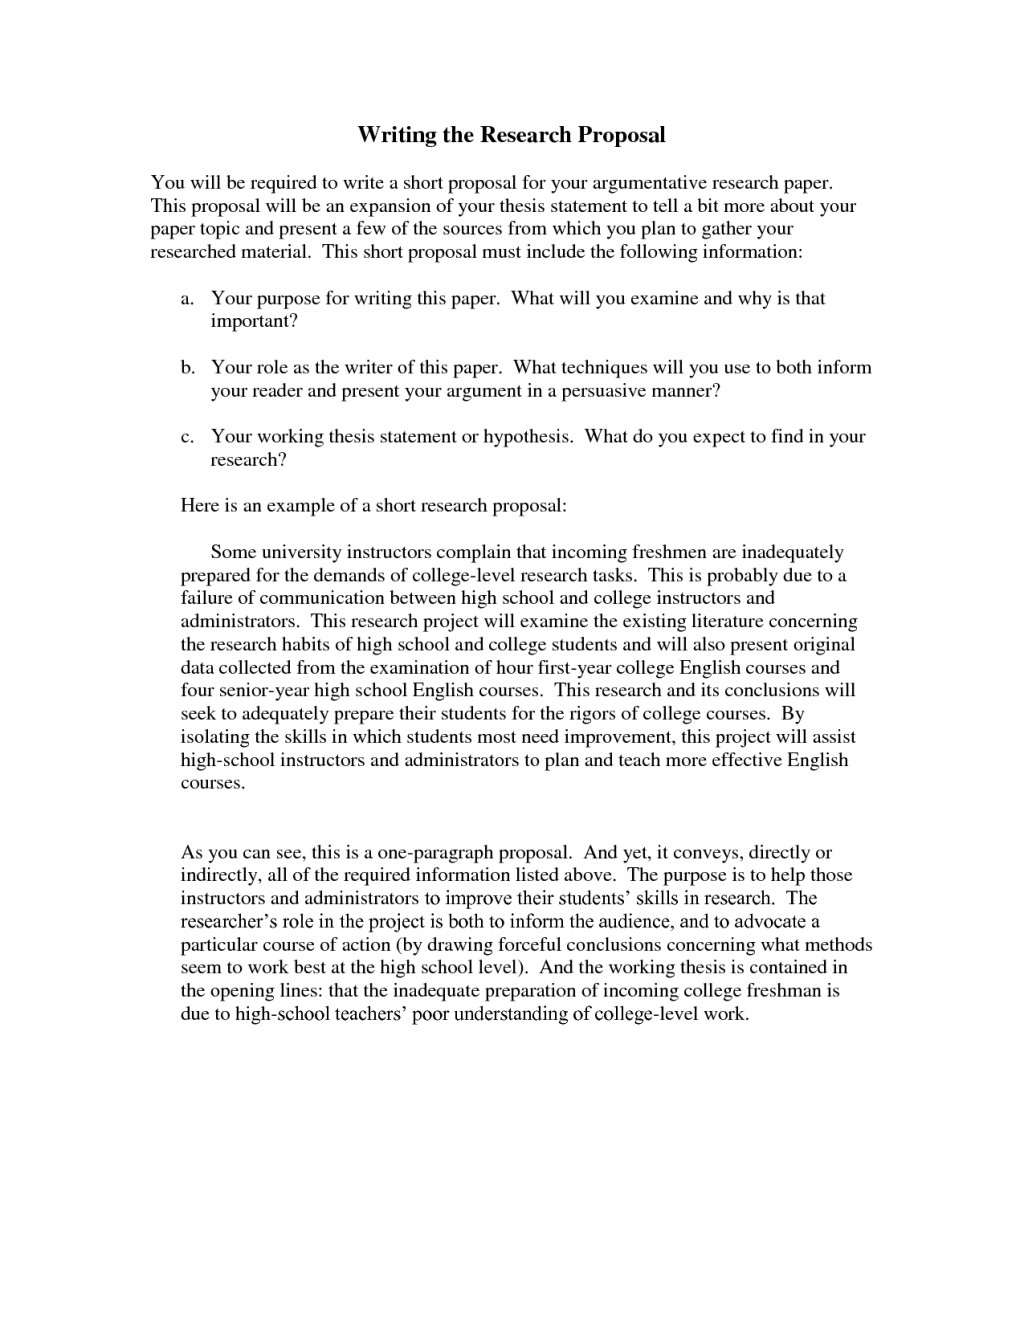 006 Argumentative Research Paper Imposing Sample Pdf Proposal Outline Large